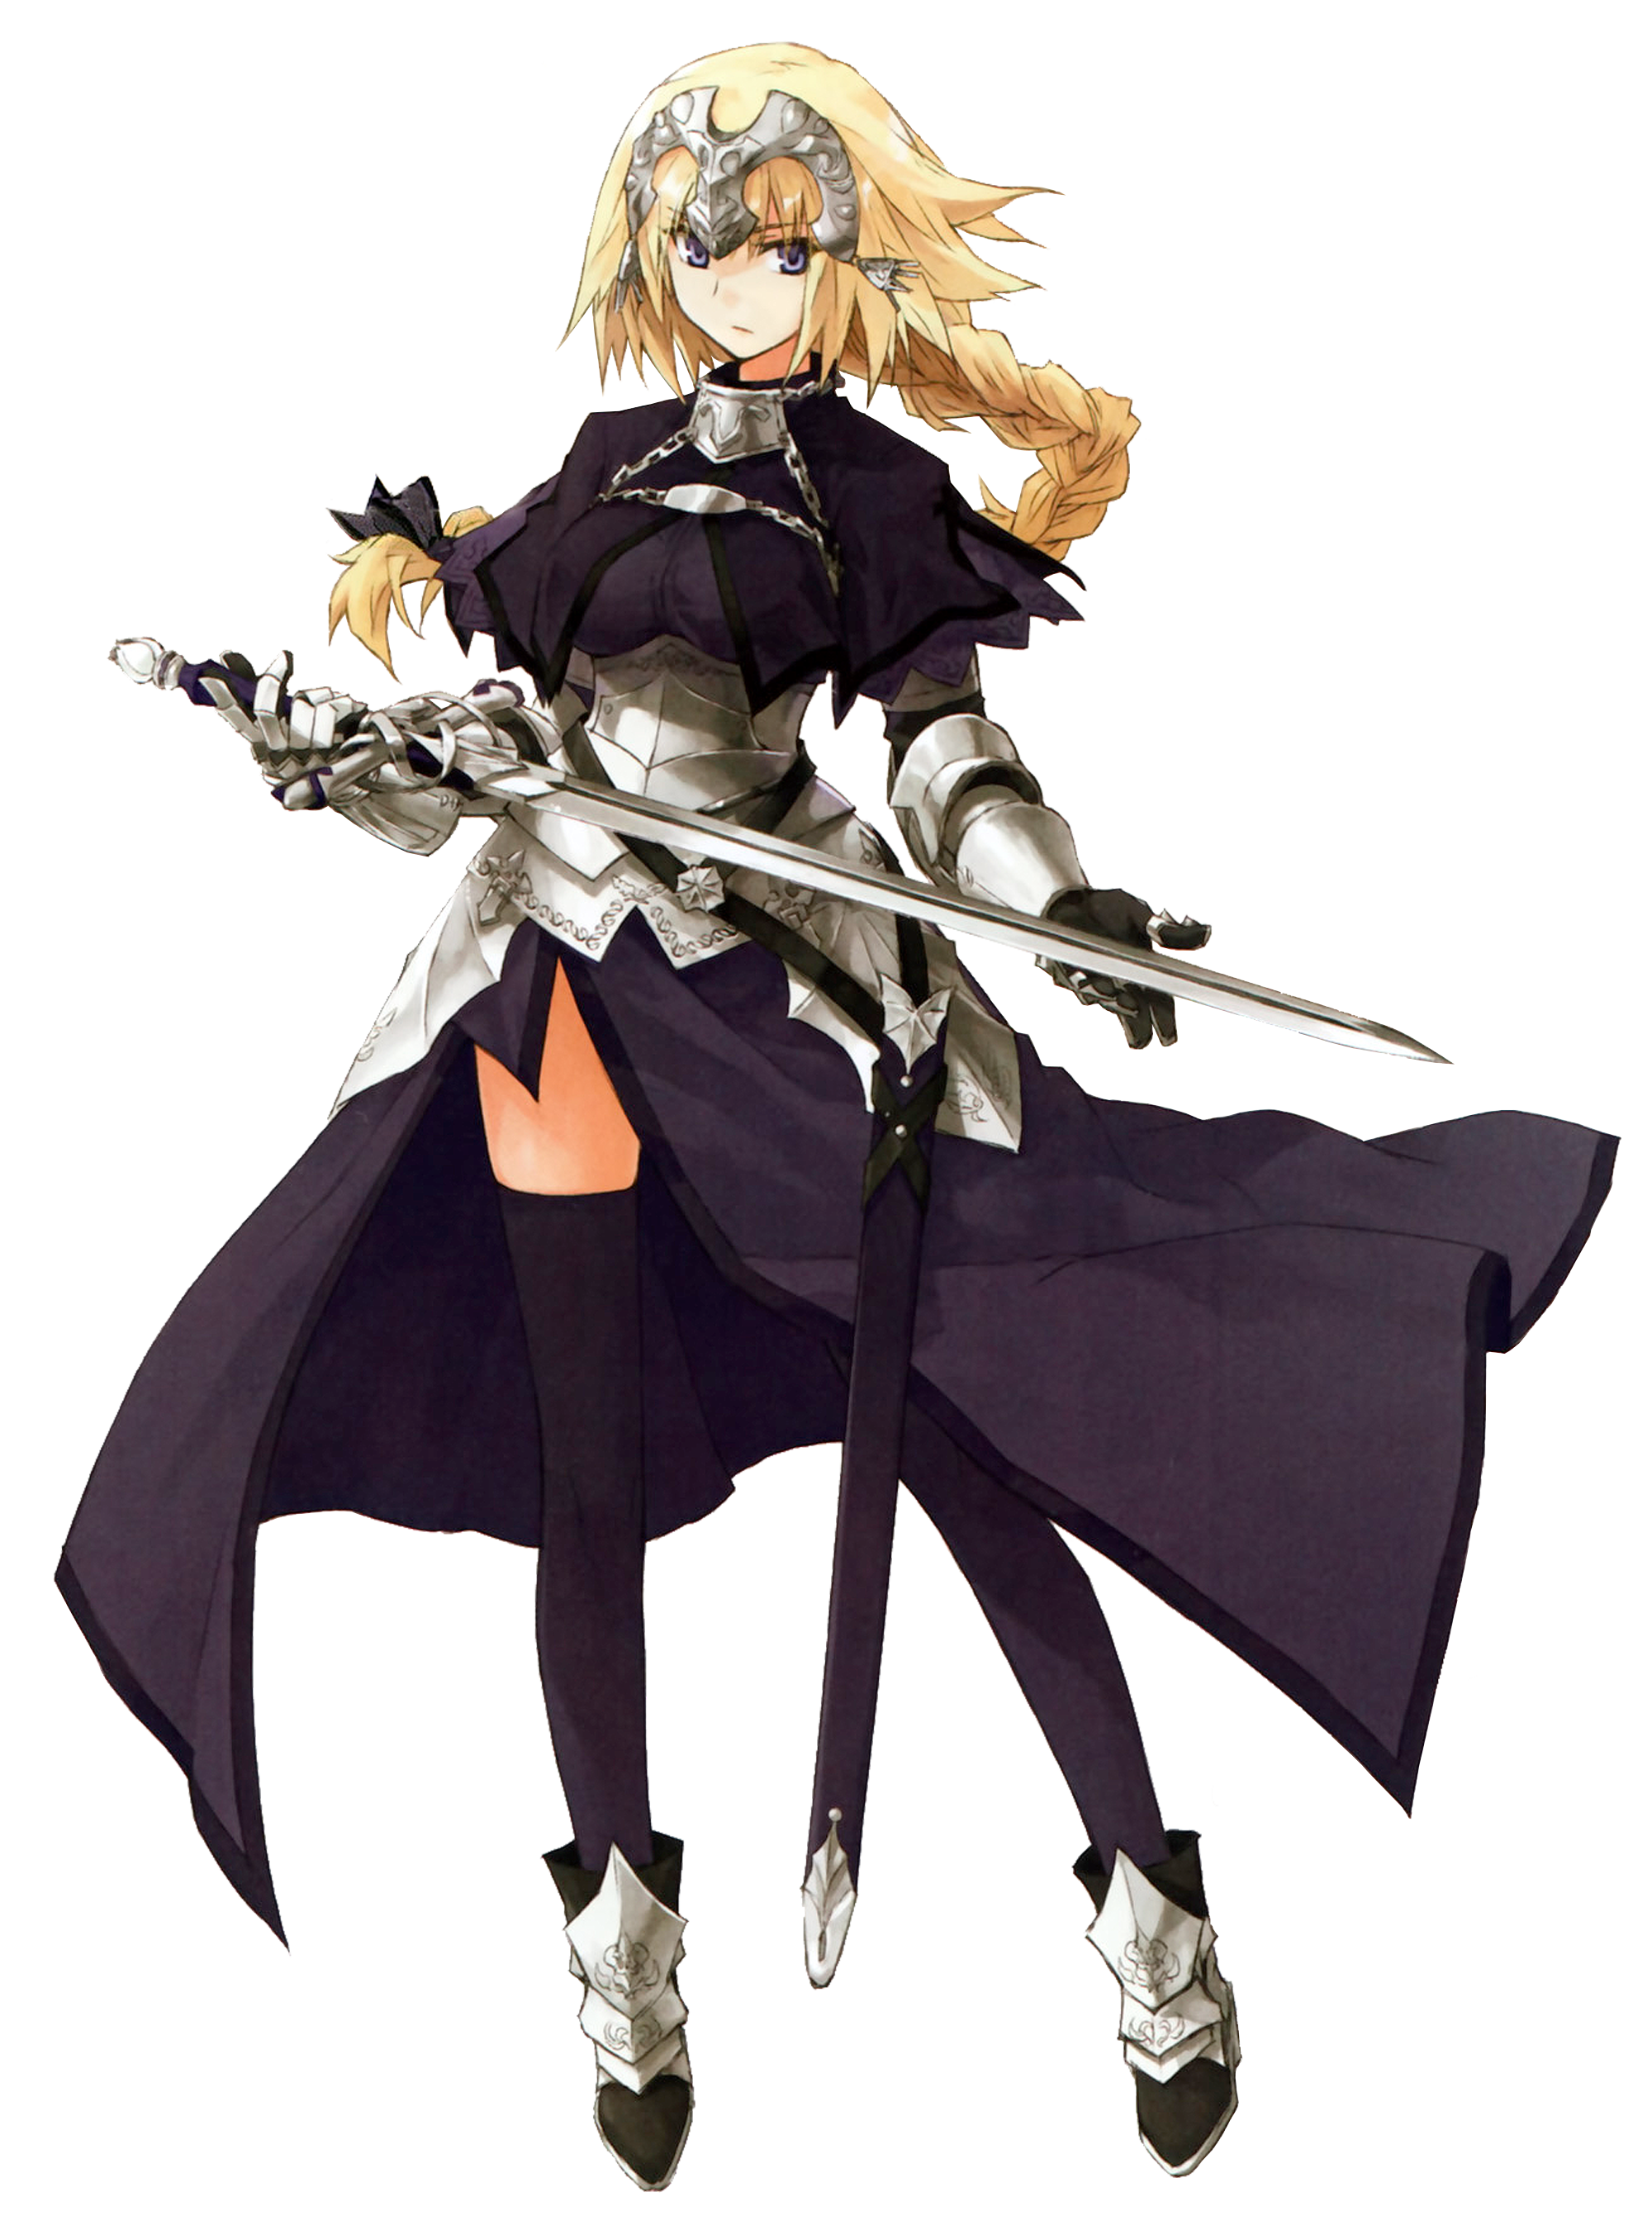 Ruler (Fate/Apocrypha) | TYPE-MOON Wiki | FANDOM powered by